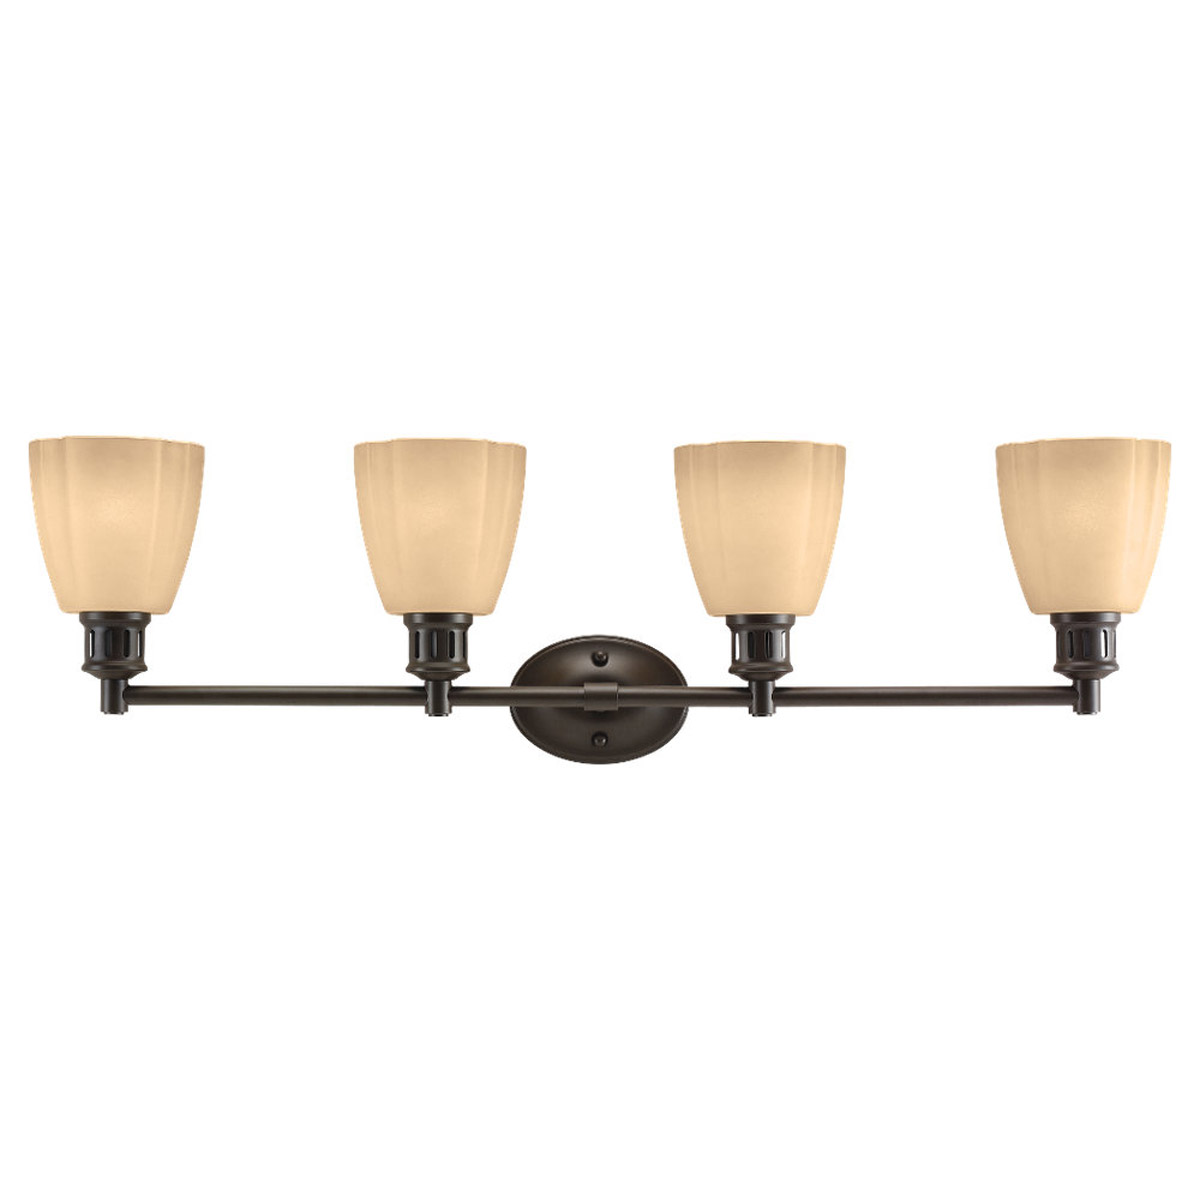 Sea Gull Lighting Century 4 Light Bath Vanity in Heirloom Bronze 44476-782